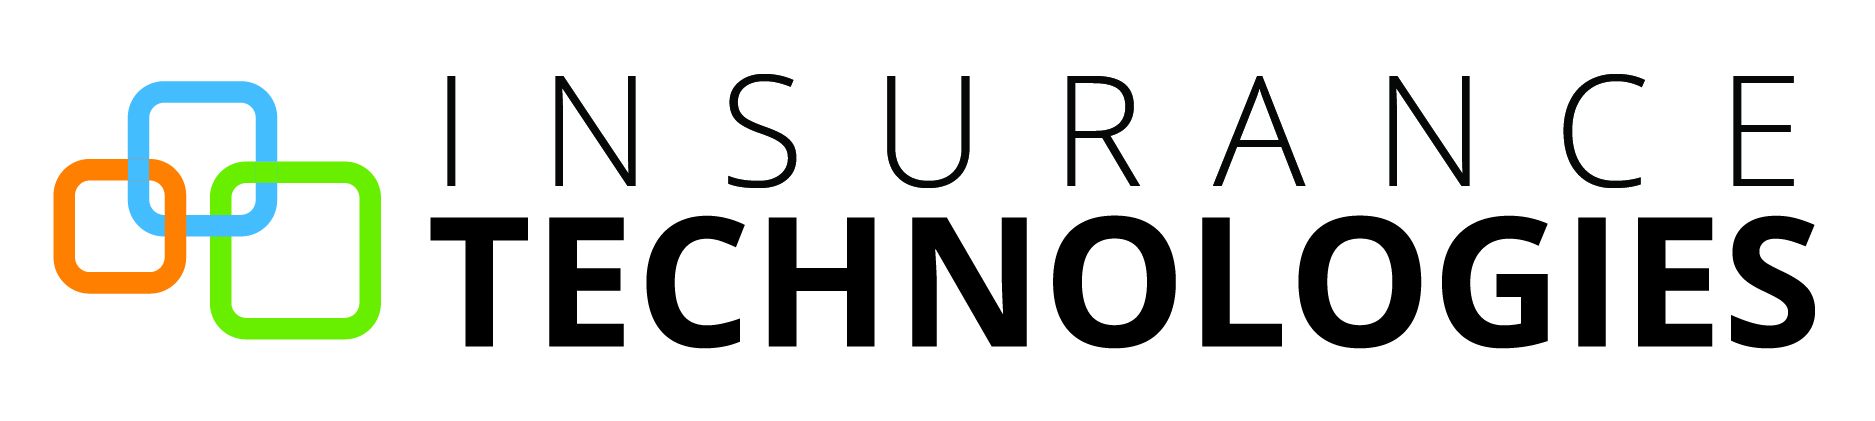 Insurance Technologies- FireLight logo